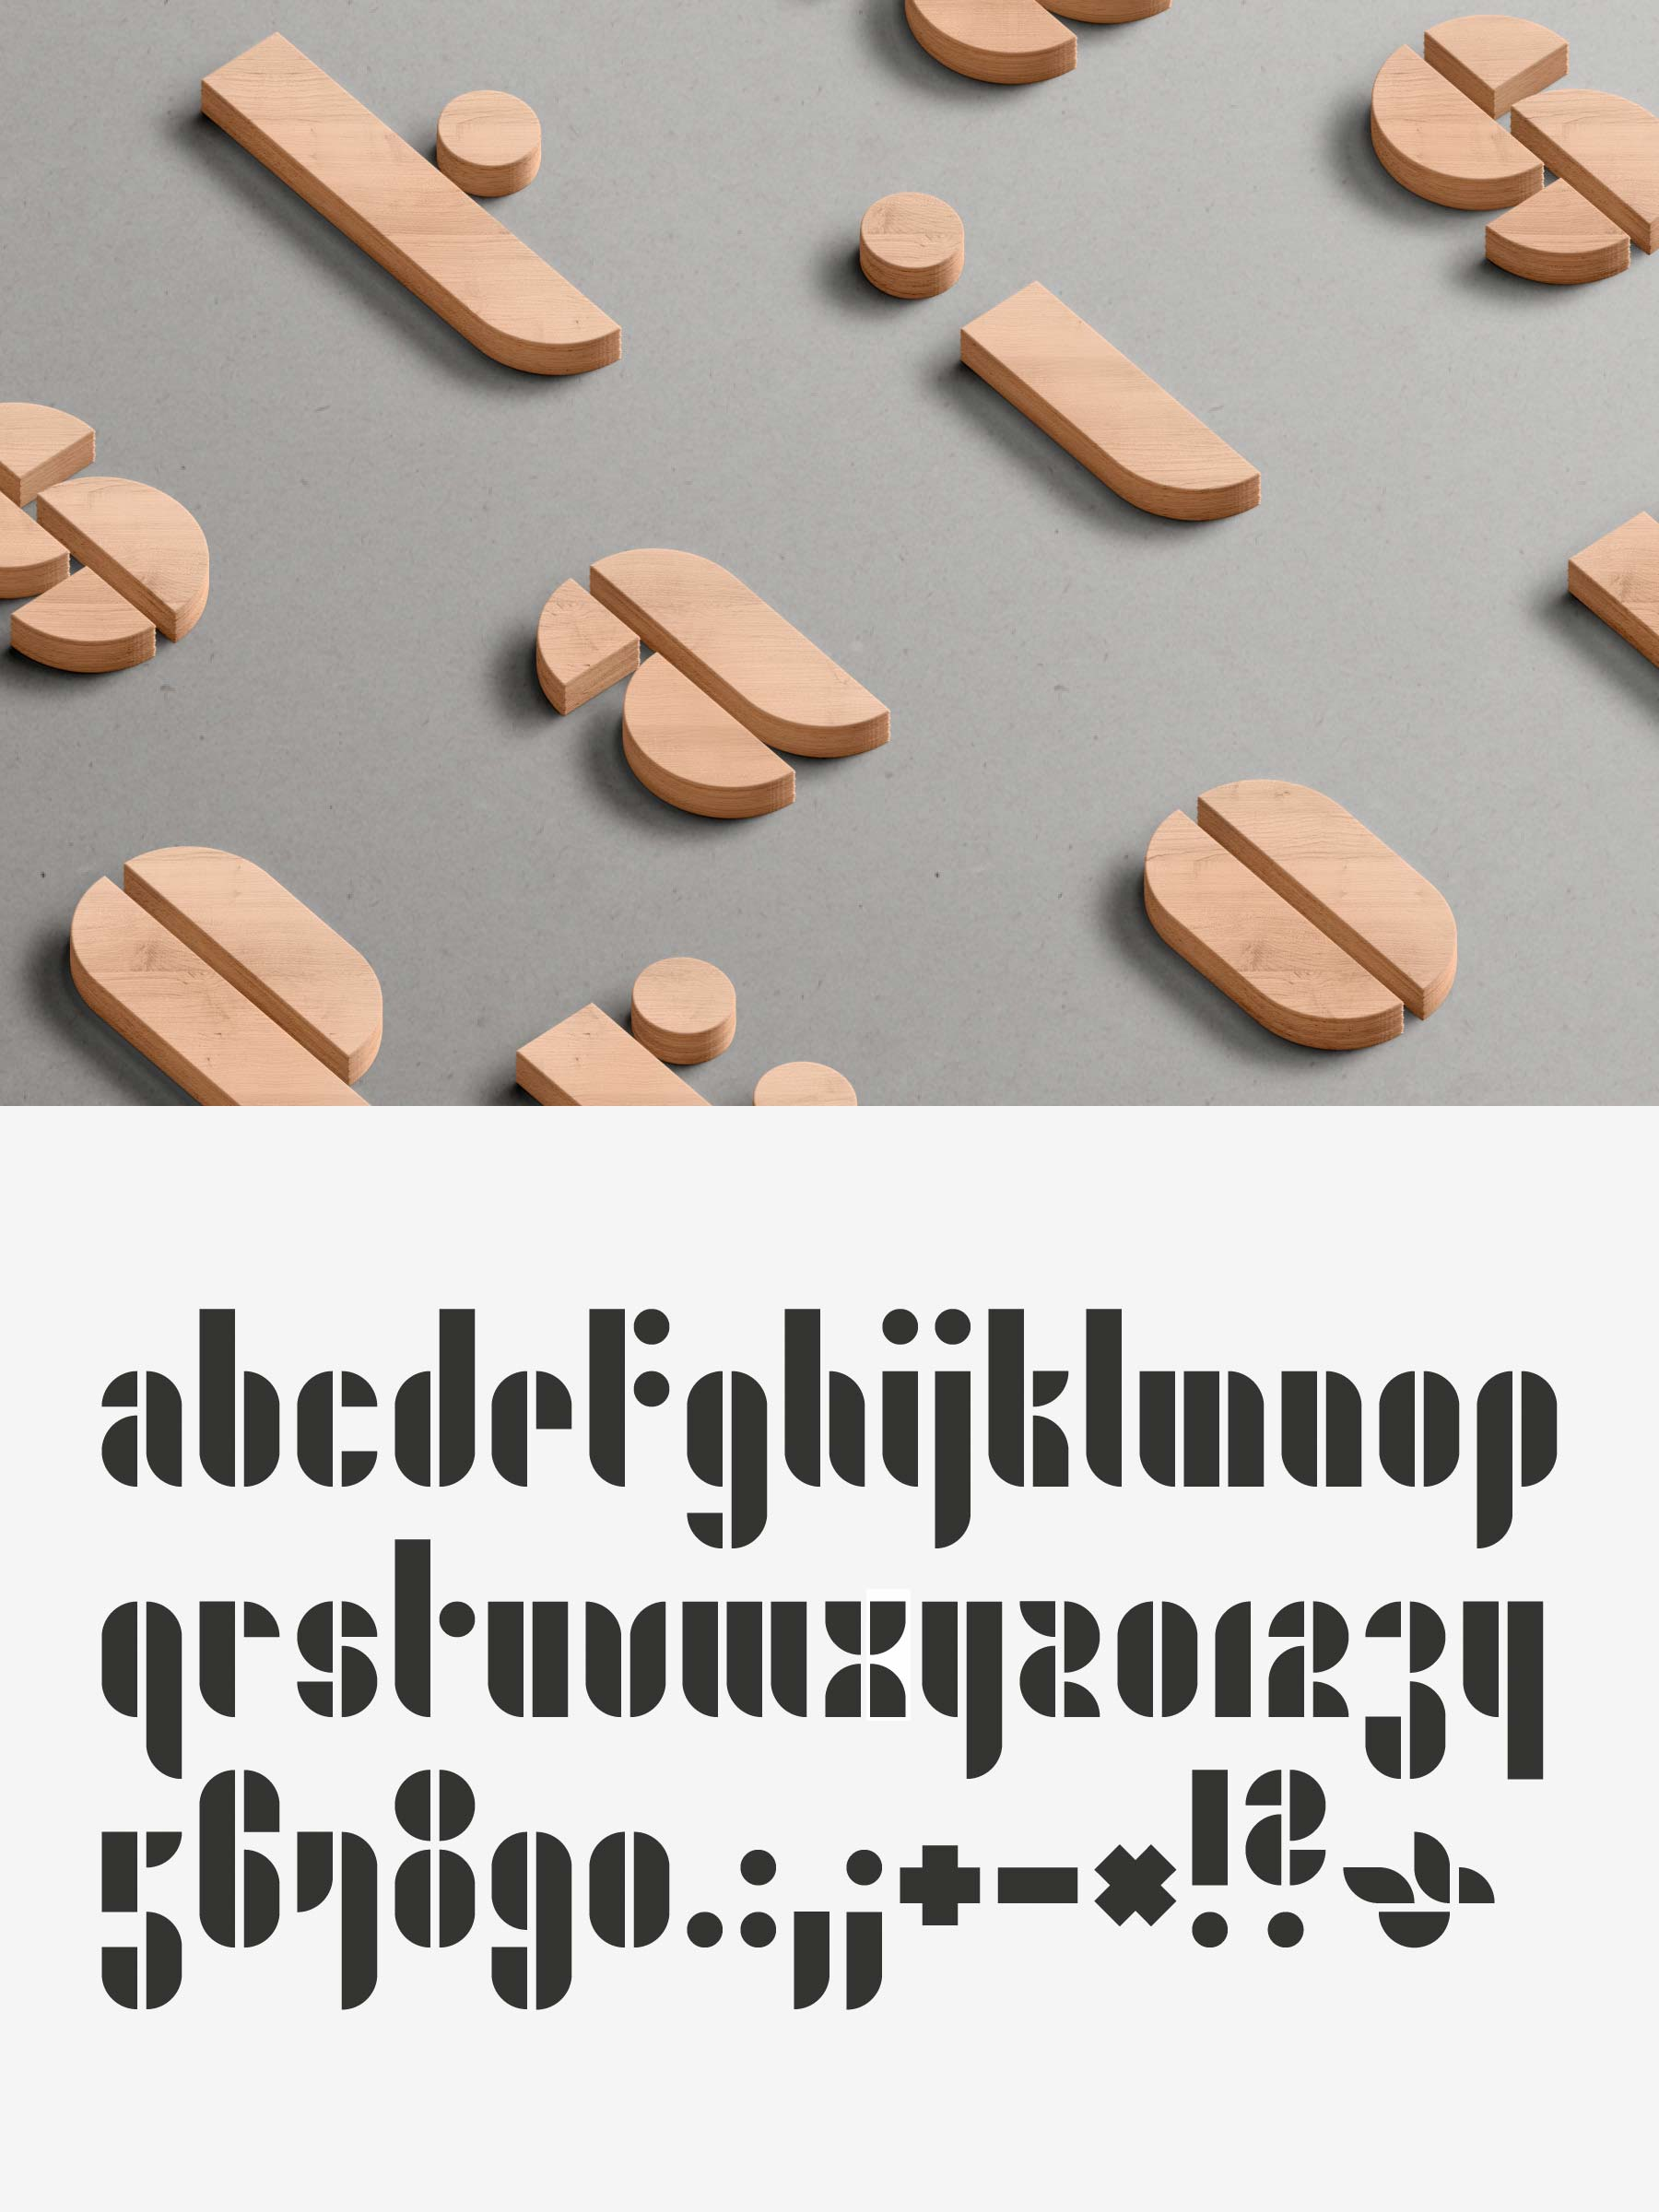 A typographic font made out of wooden shapes